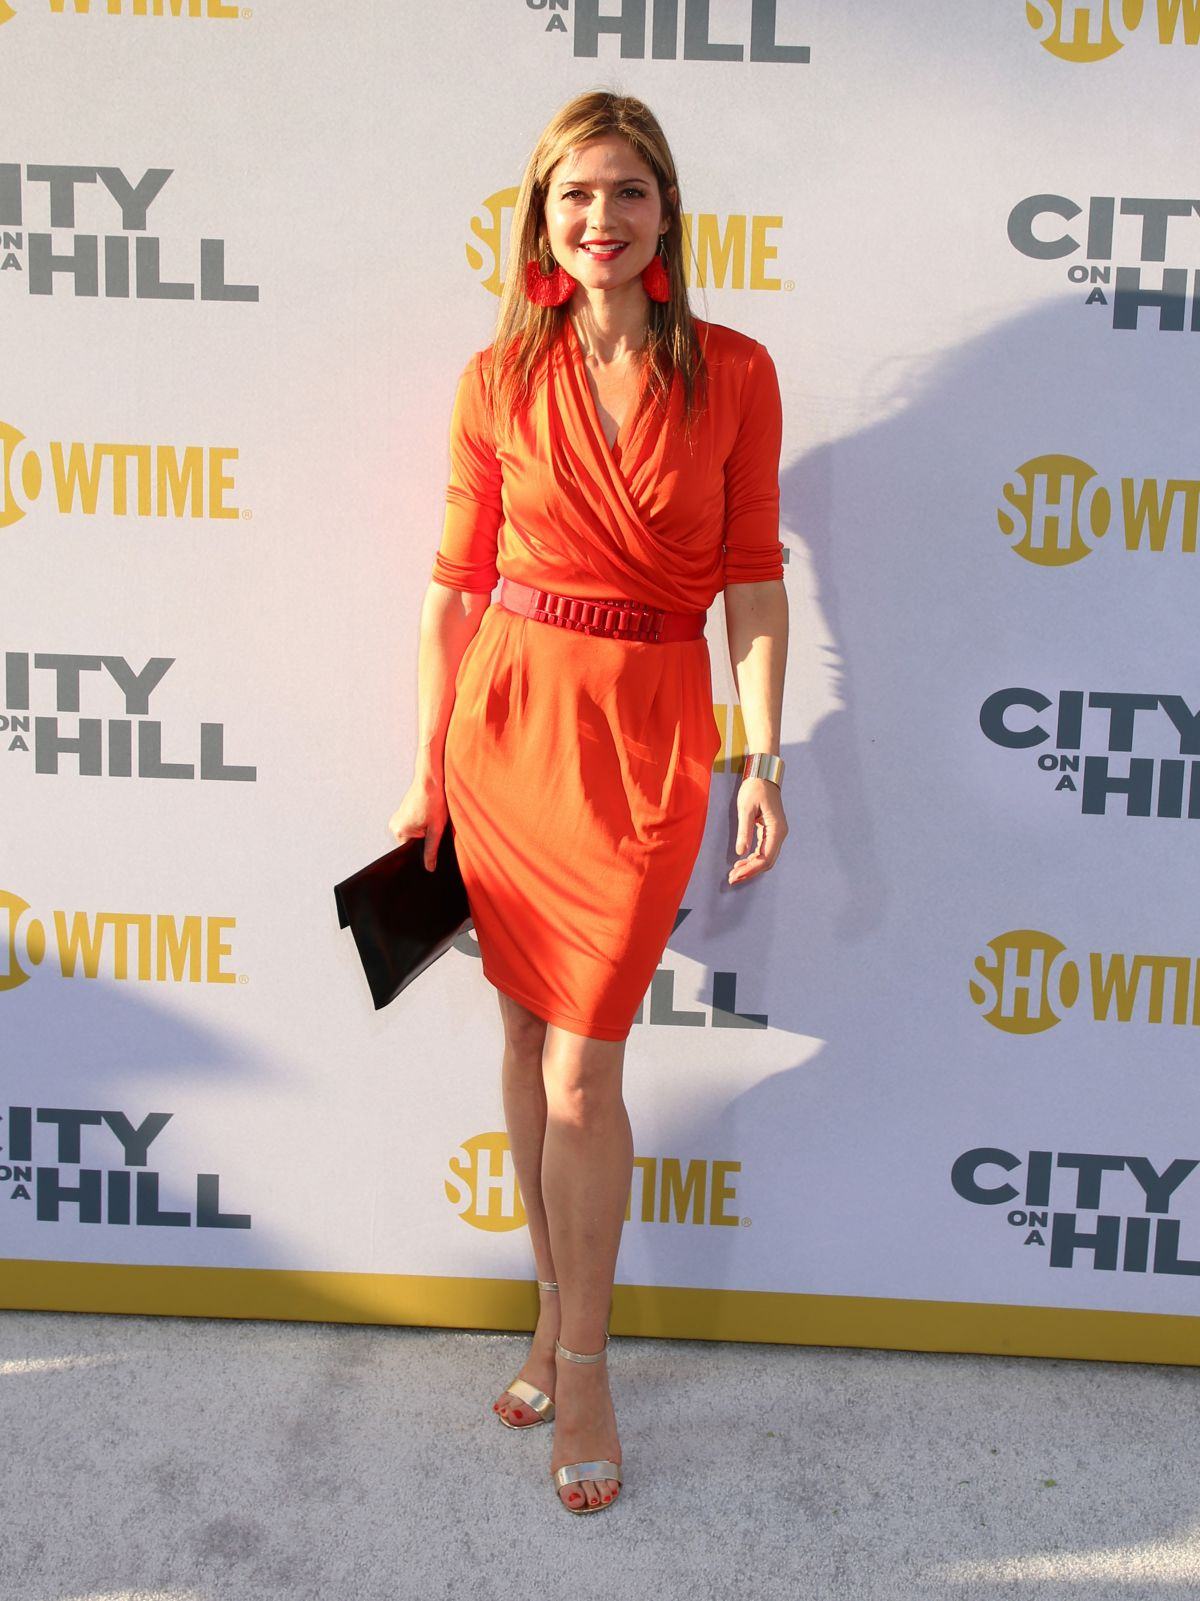 Angelique Hennessy jill hennessy at 'city on a hill' tv show premiere, new york